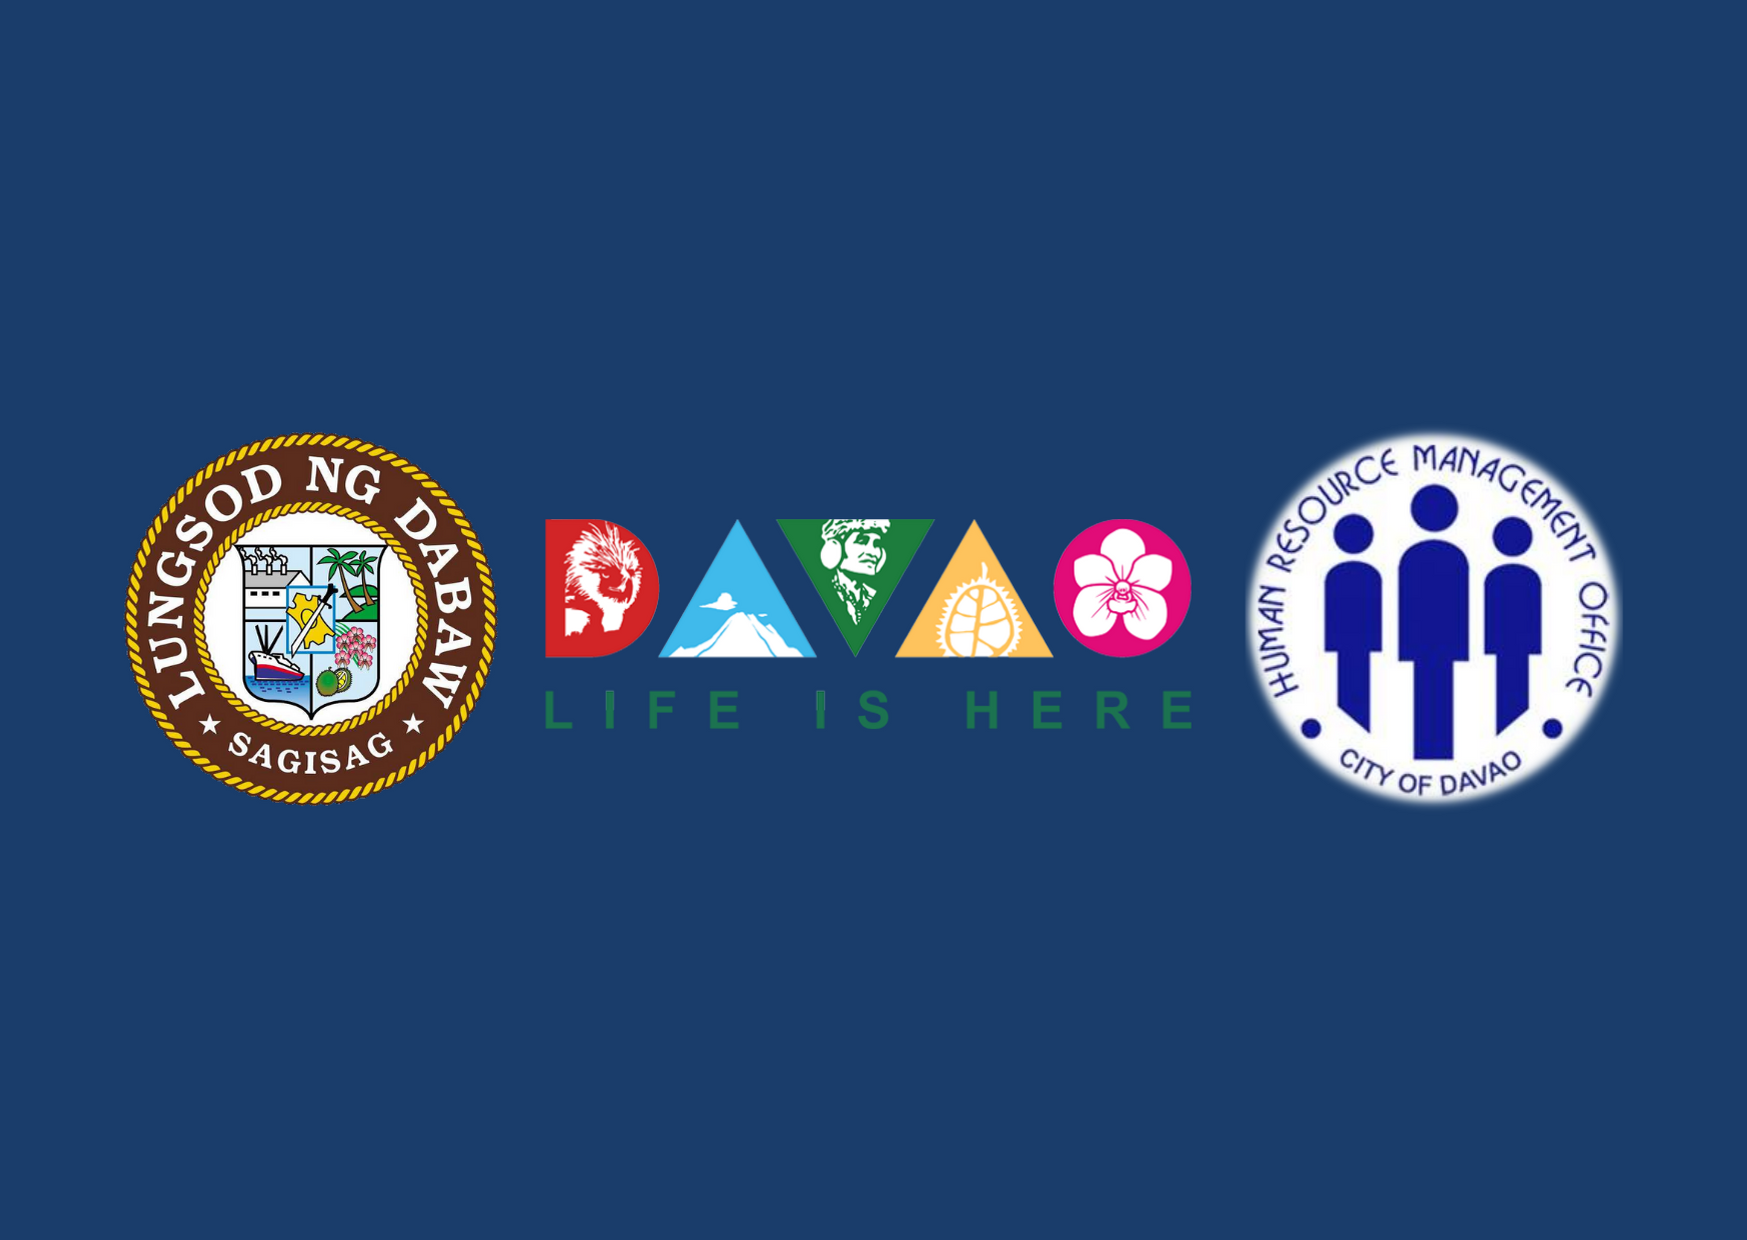 City Government of Davao adopts new work arrangement under Modified General Community Quarantine